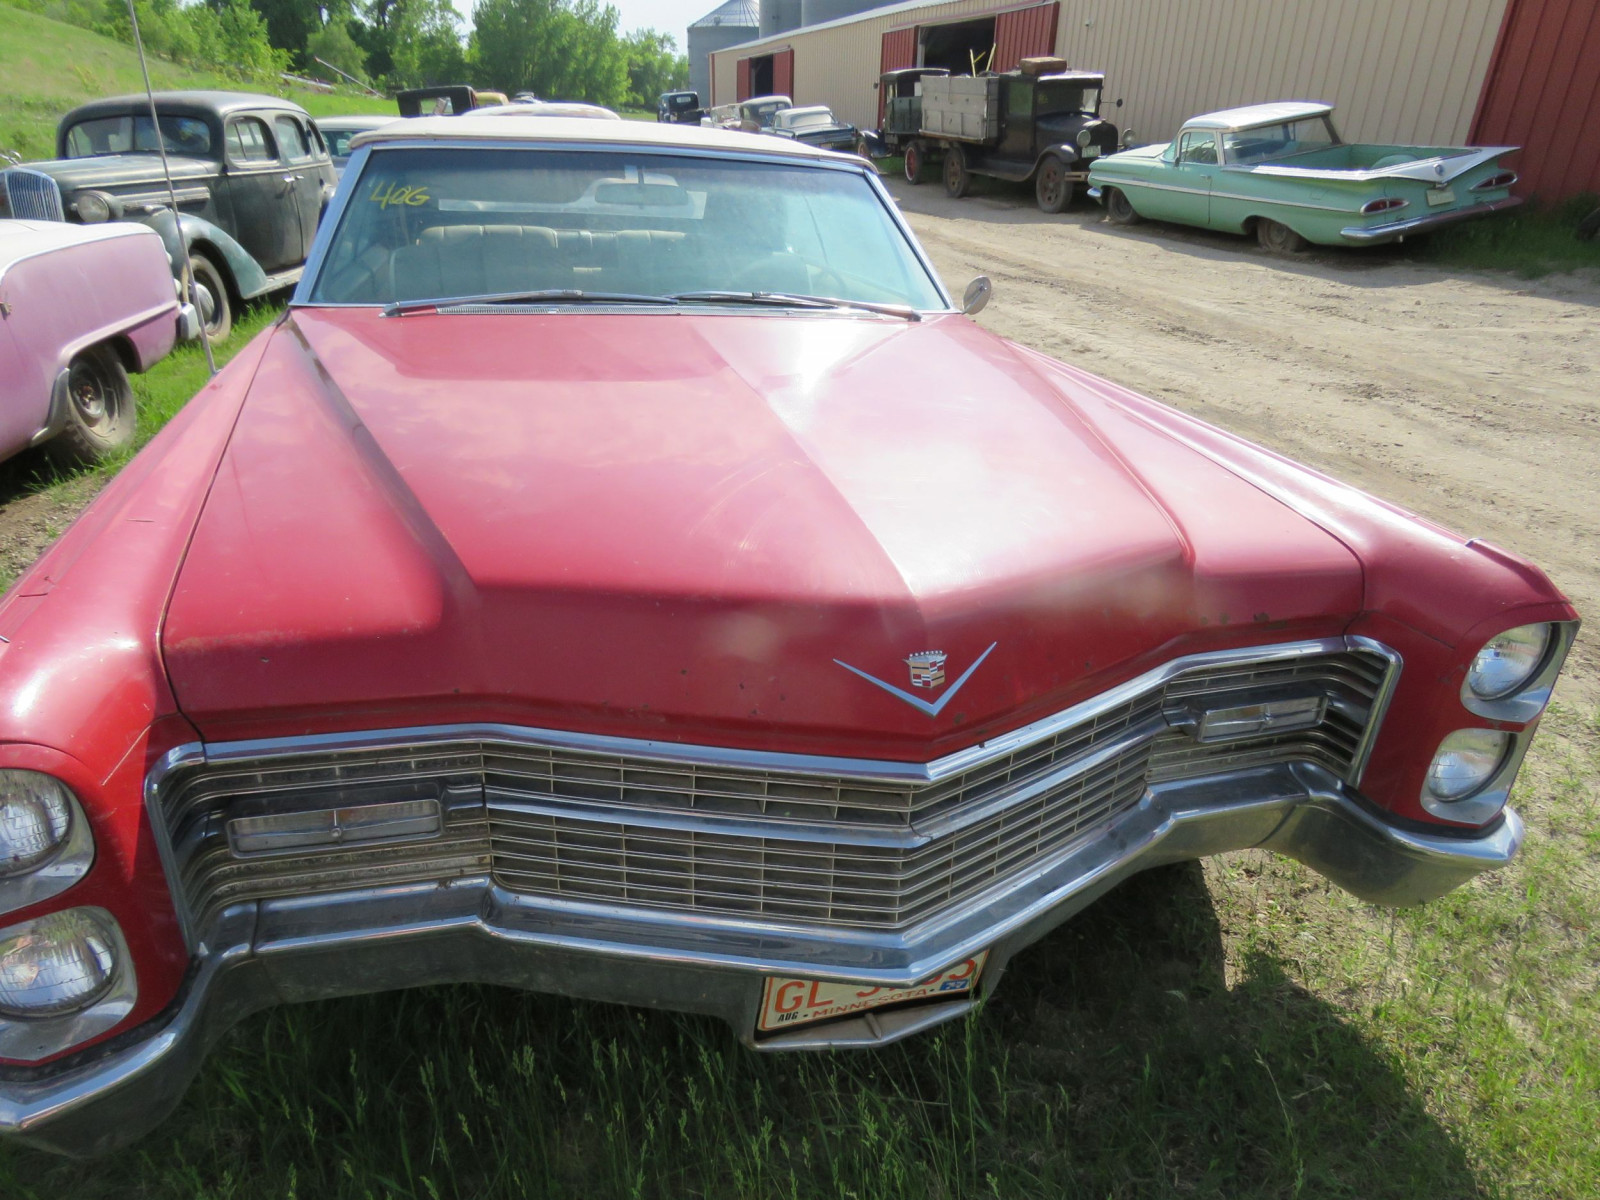 1961 Cadillac Deville Convertible F6122546 - Image 2